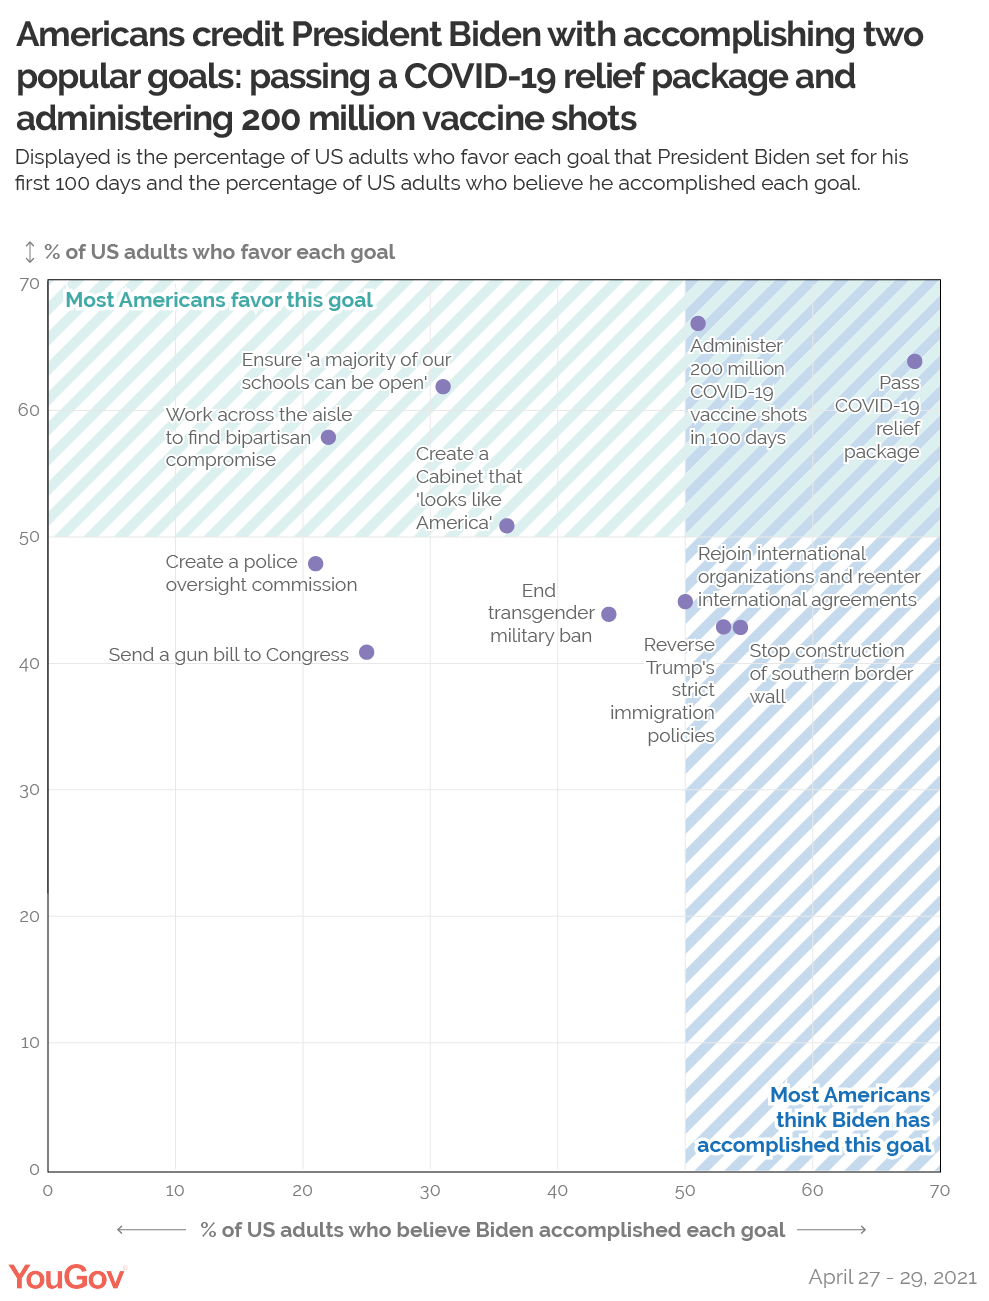 Chart of how much Americans credit Biden with accomplishing popular goals related to COVID-19